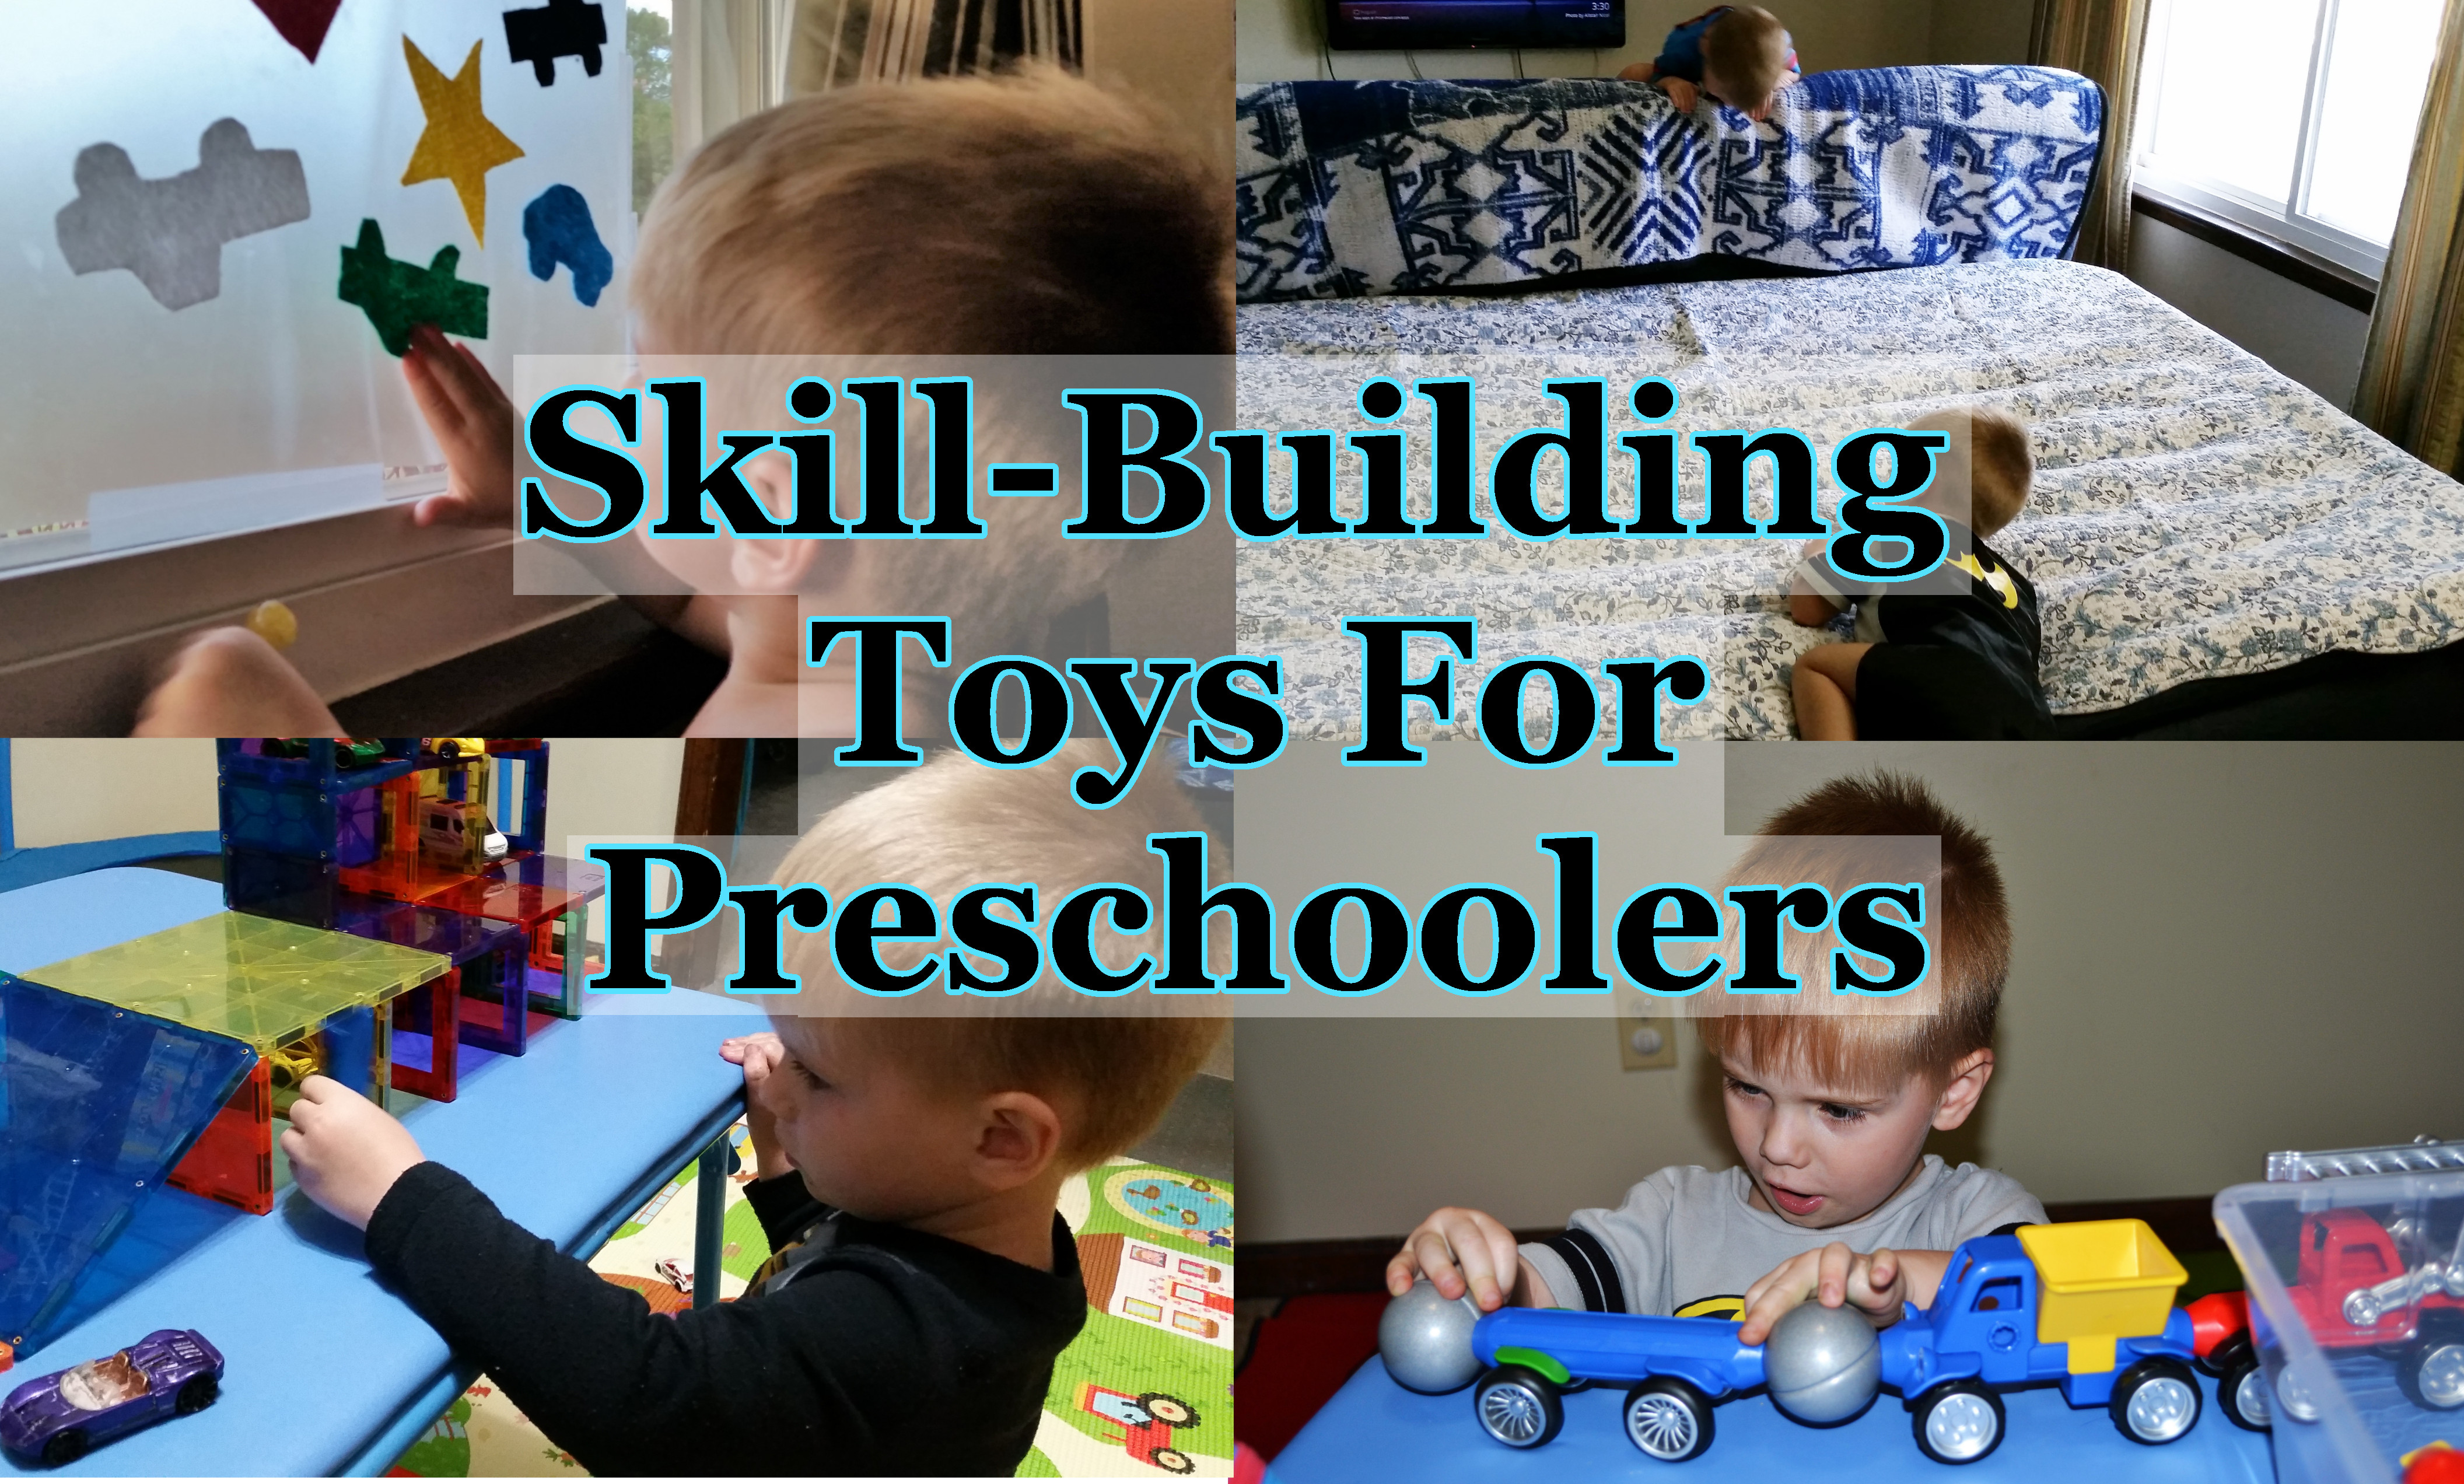 Skill Building Toys For Preschoolers